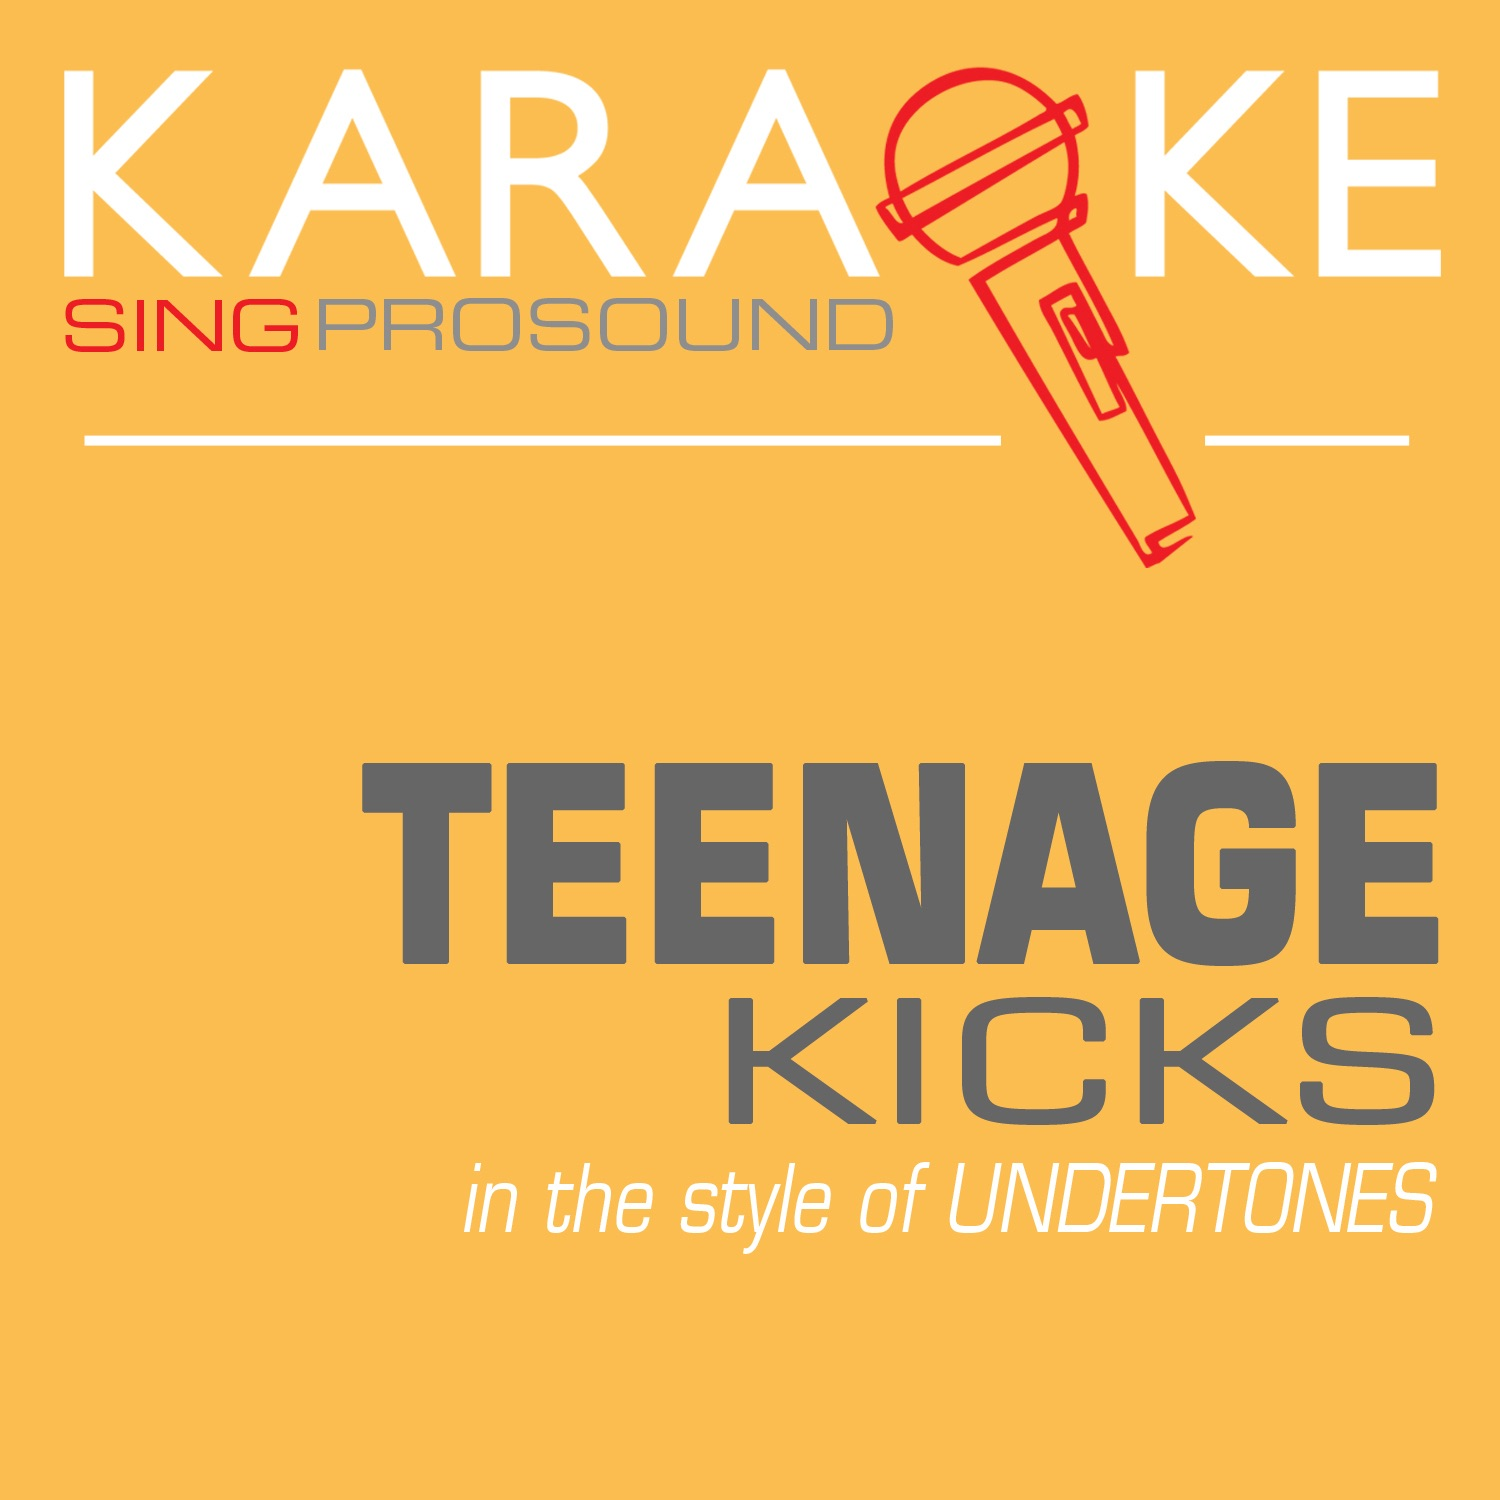 Teenage Kicks (In the Style of Undertones) [Karaoke with Background Vocal] - Single